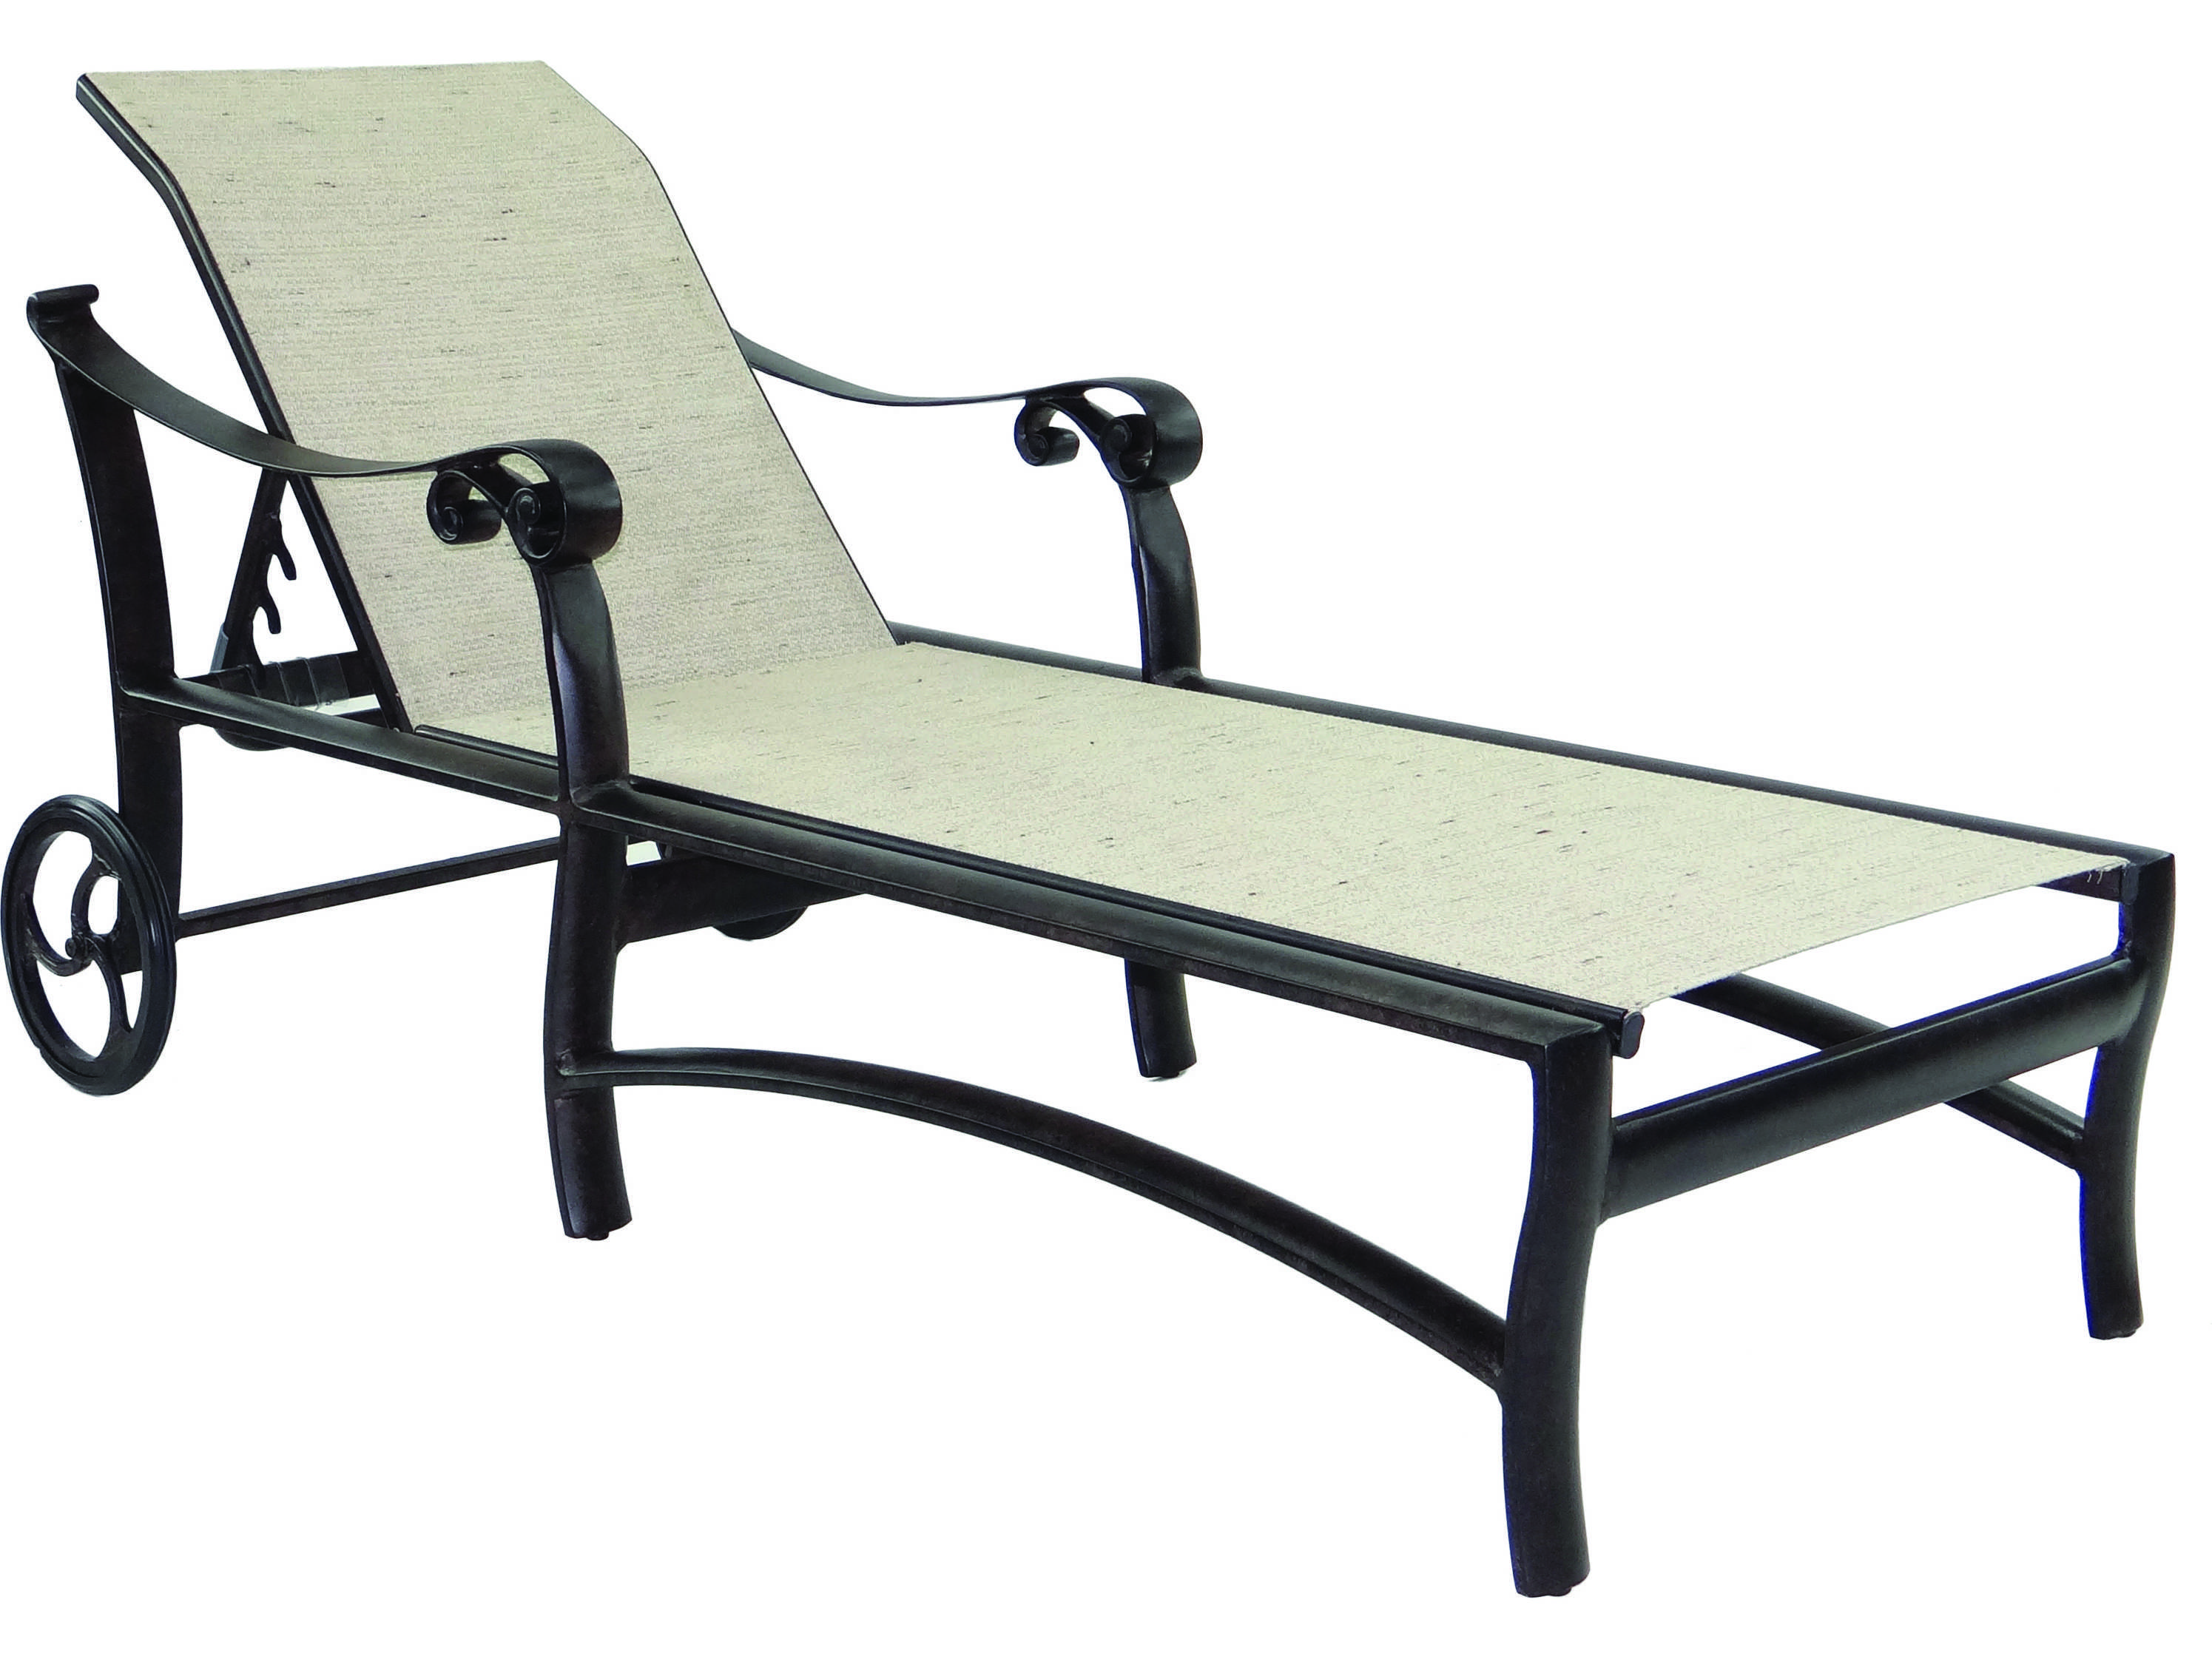 Castelle bellanova sling cast aluminum adjustable chaise for Aluminum chaise lounge with wheels